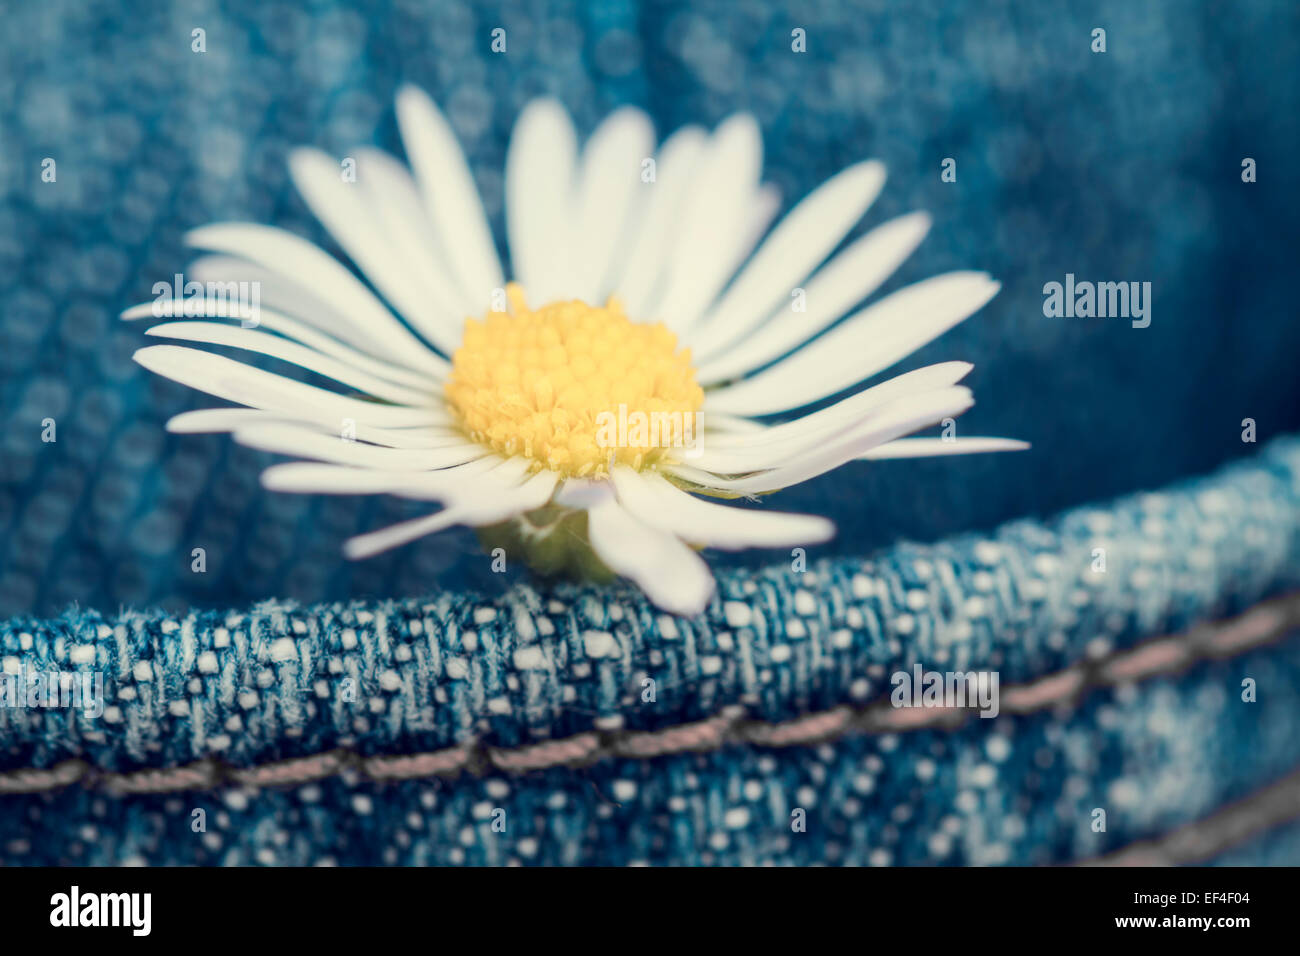 concept, daisy flower in a pocket of jean trousers - Stock Image